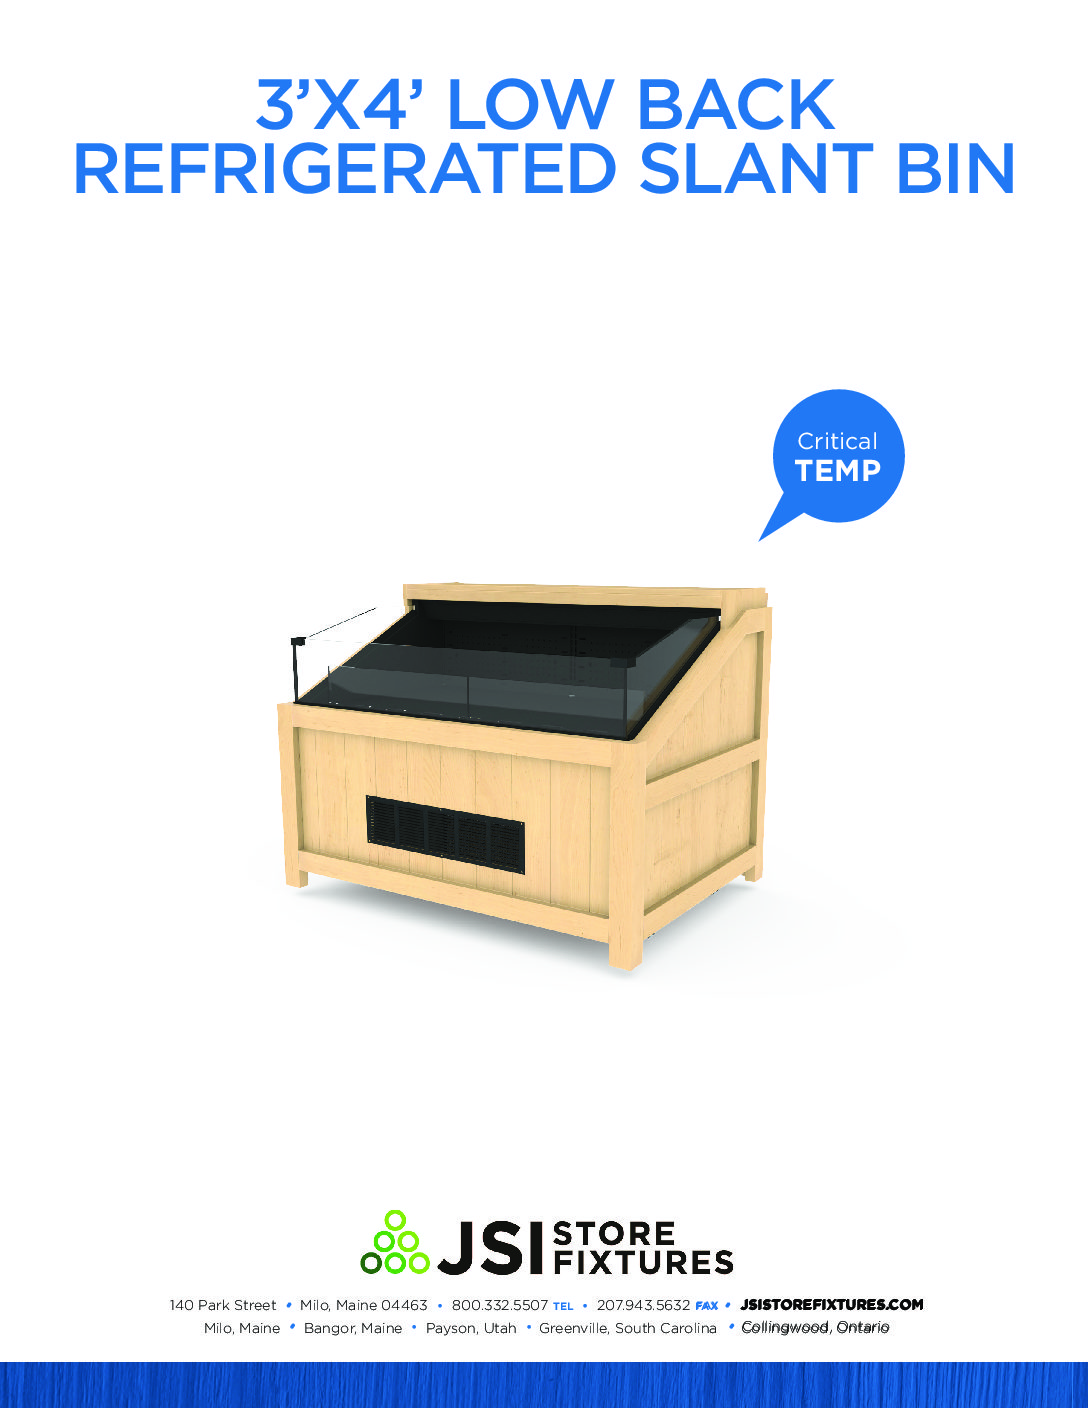 3'x4' Low Back Refrigerated Slant Bin Spec Sheet